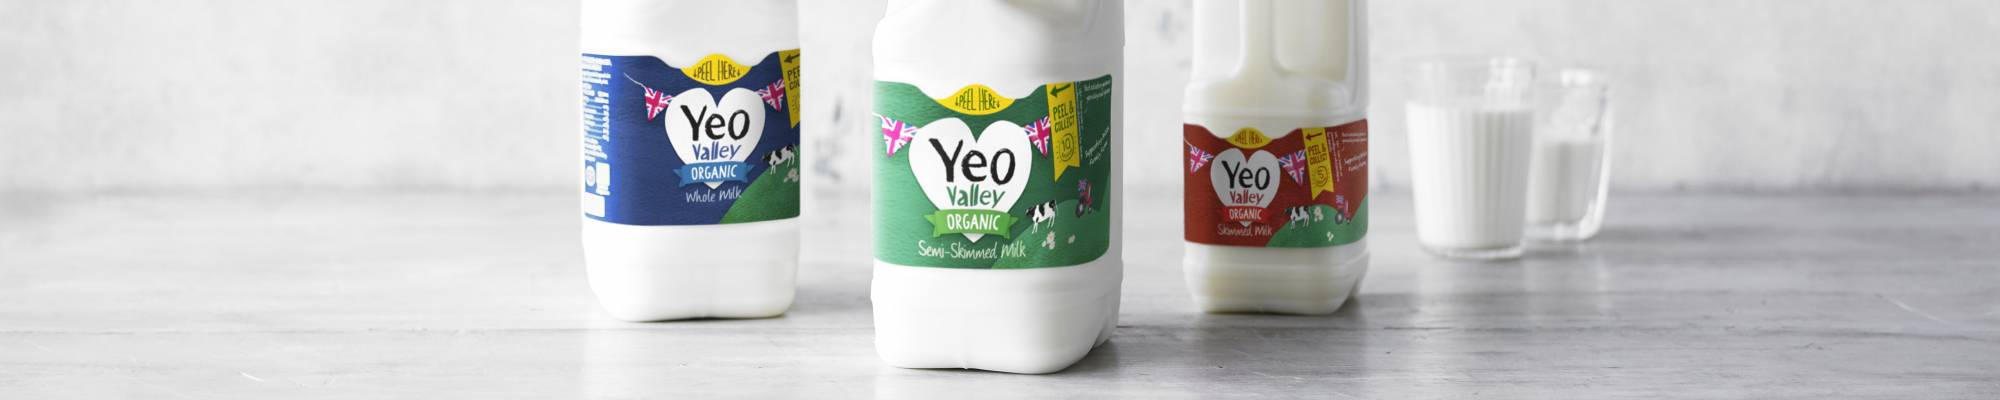 Yeo Valley milk whole, semi-skimmed and skimmed